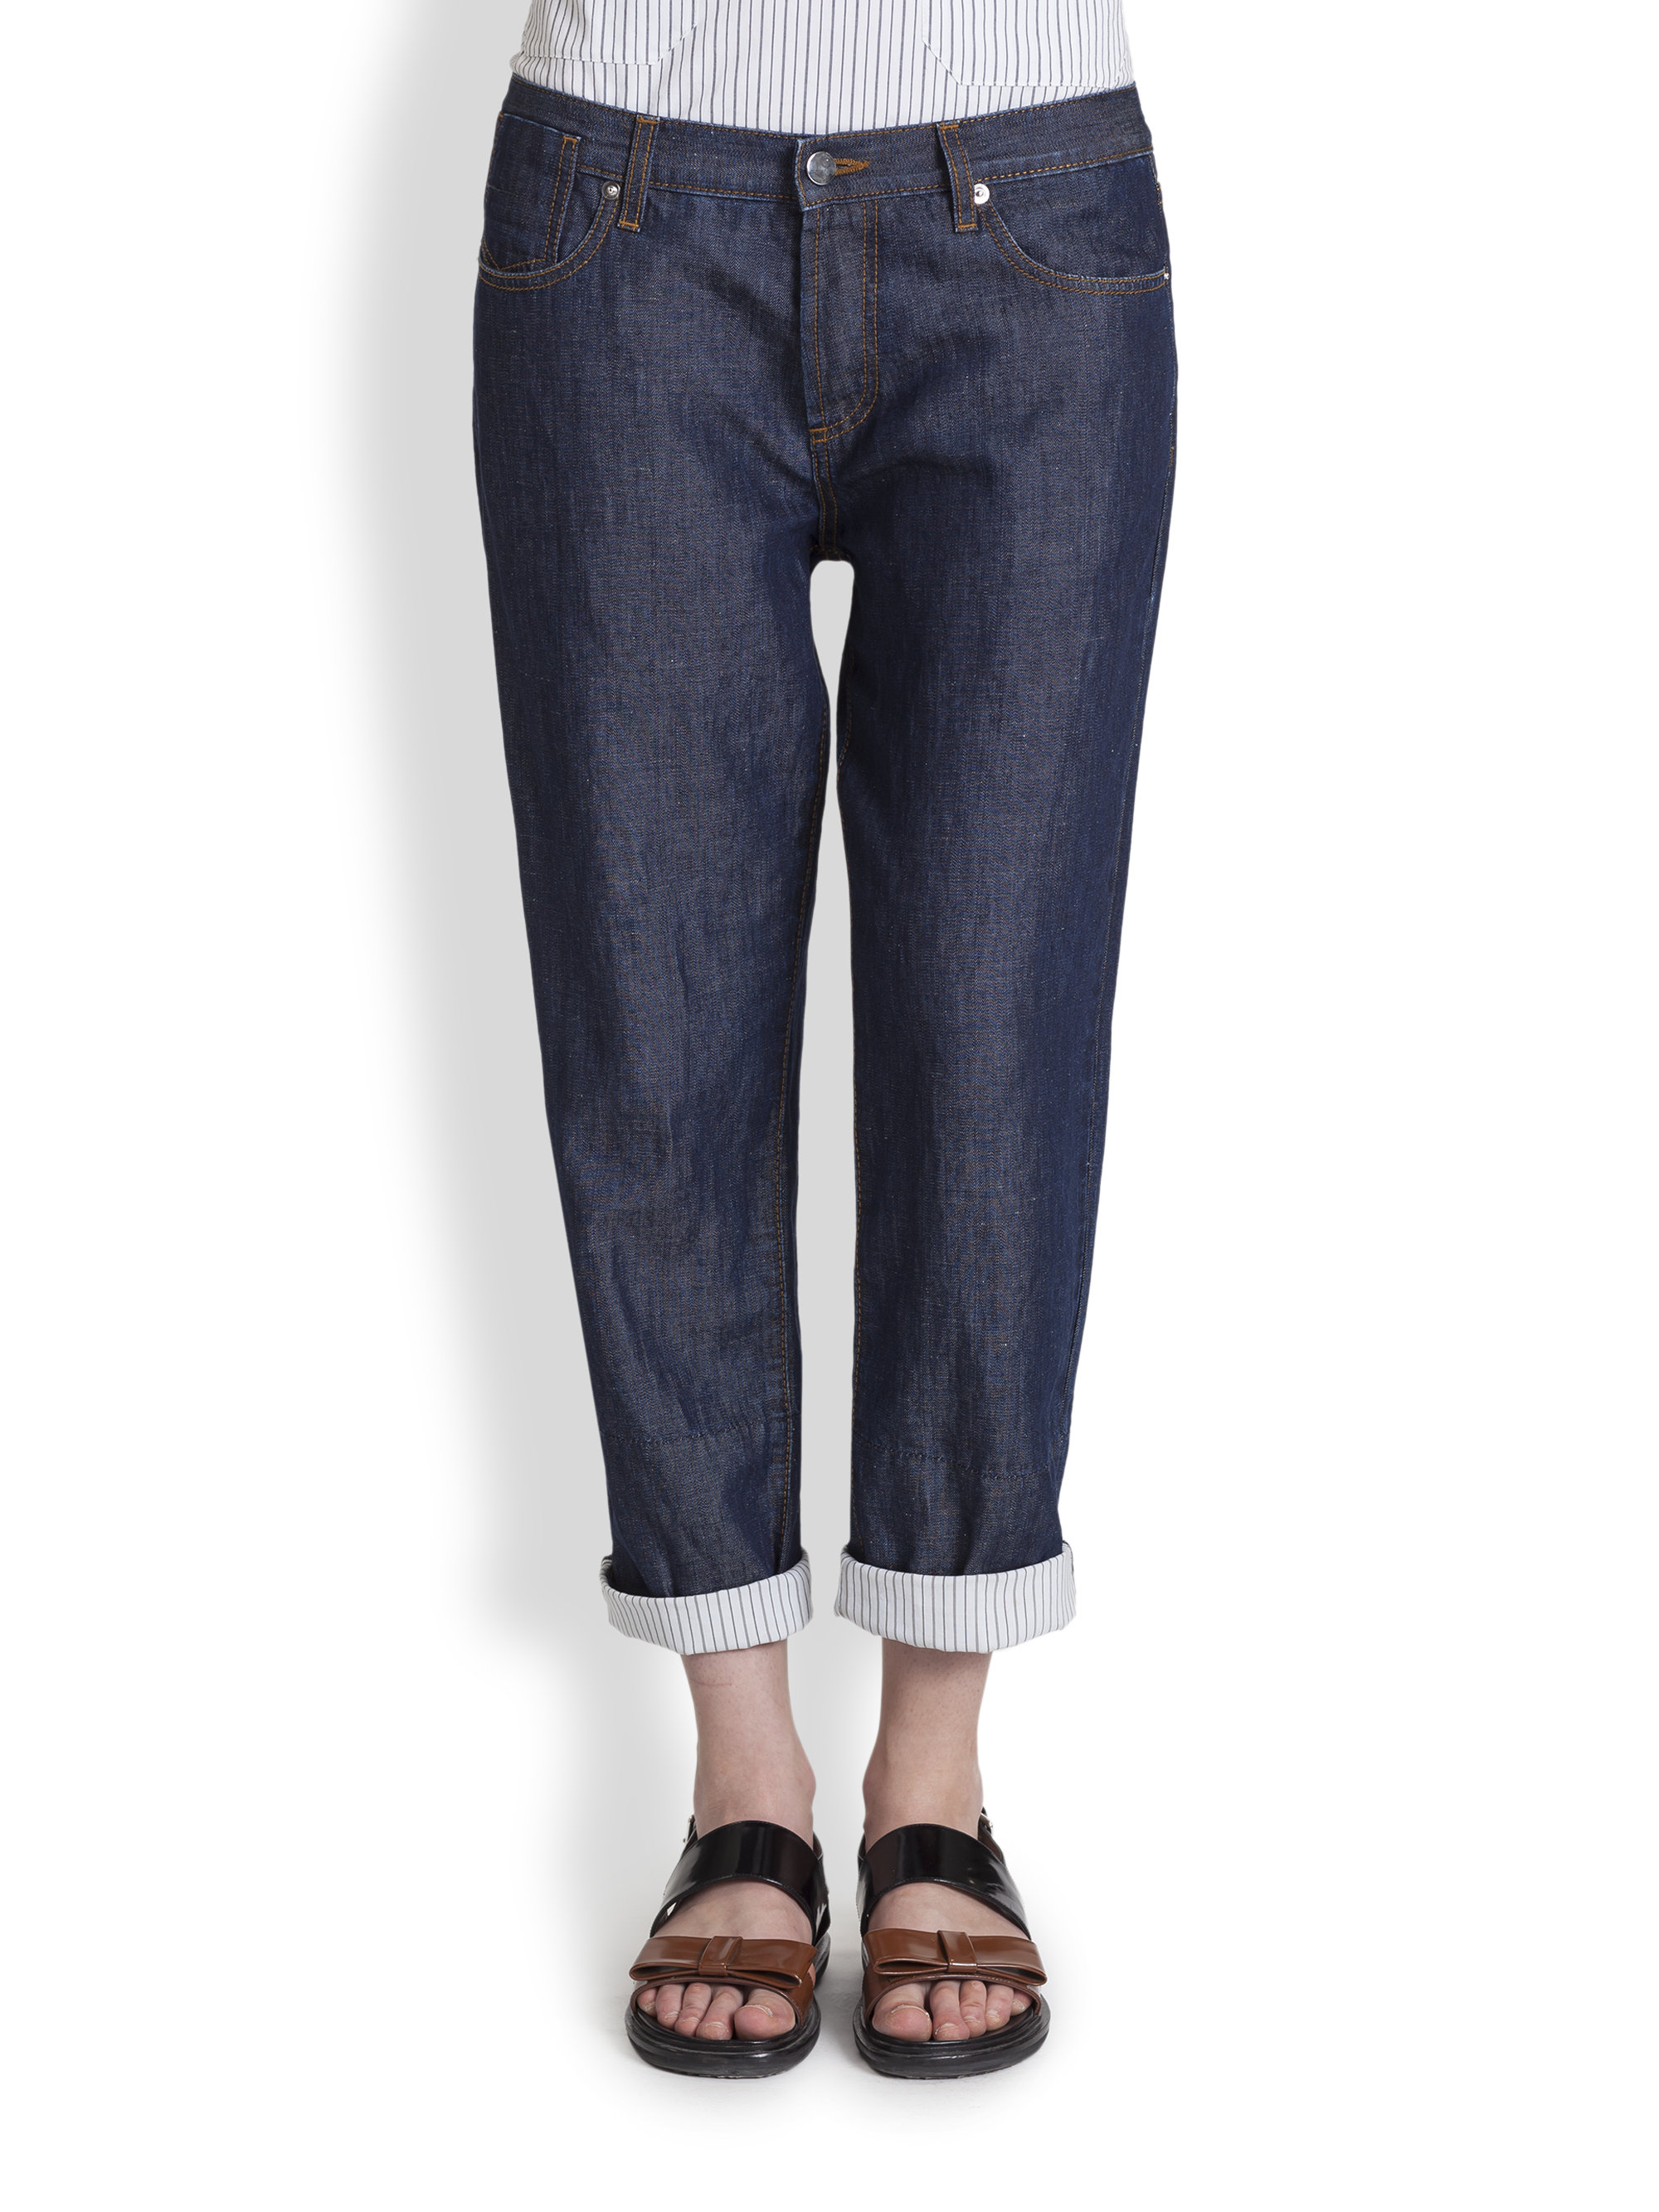 Marni Denim Boyfriend Jeans in Blue | Lyst